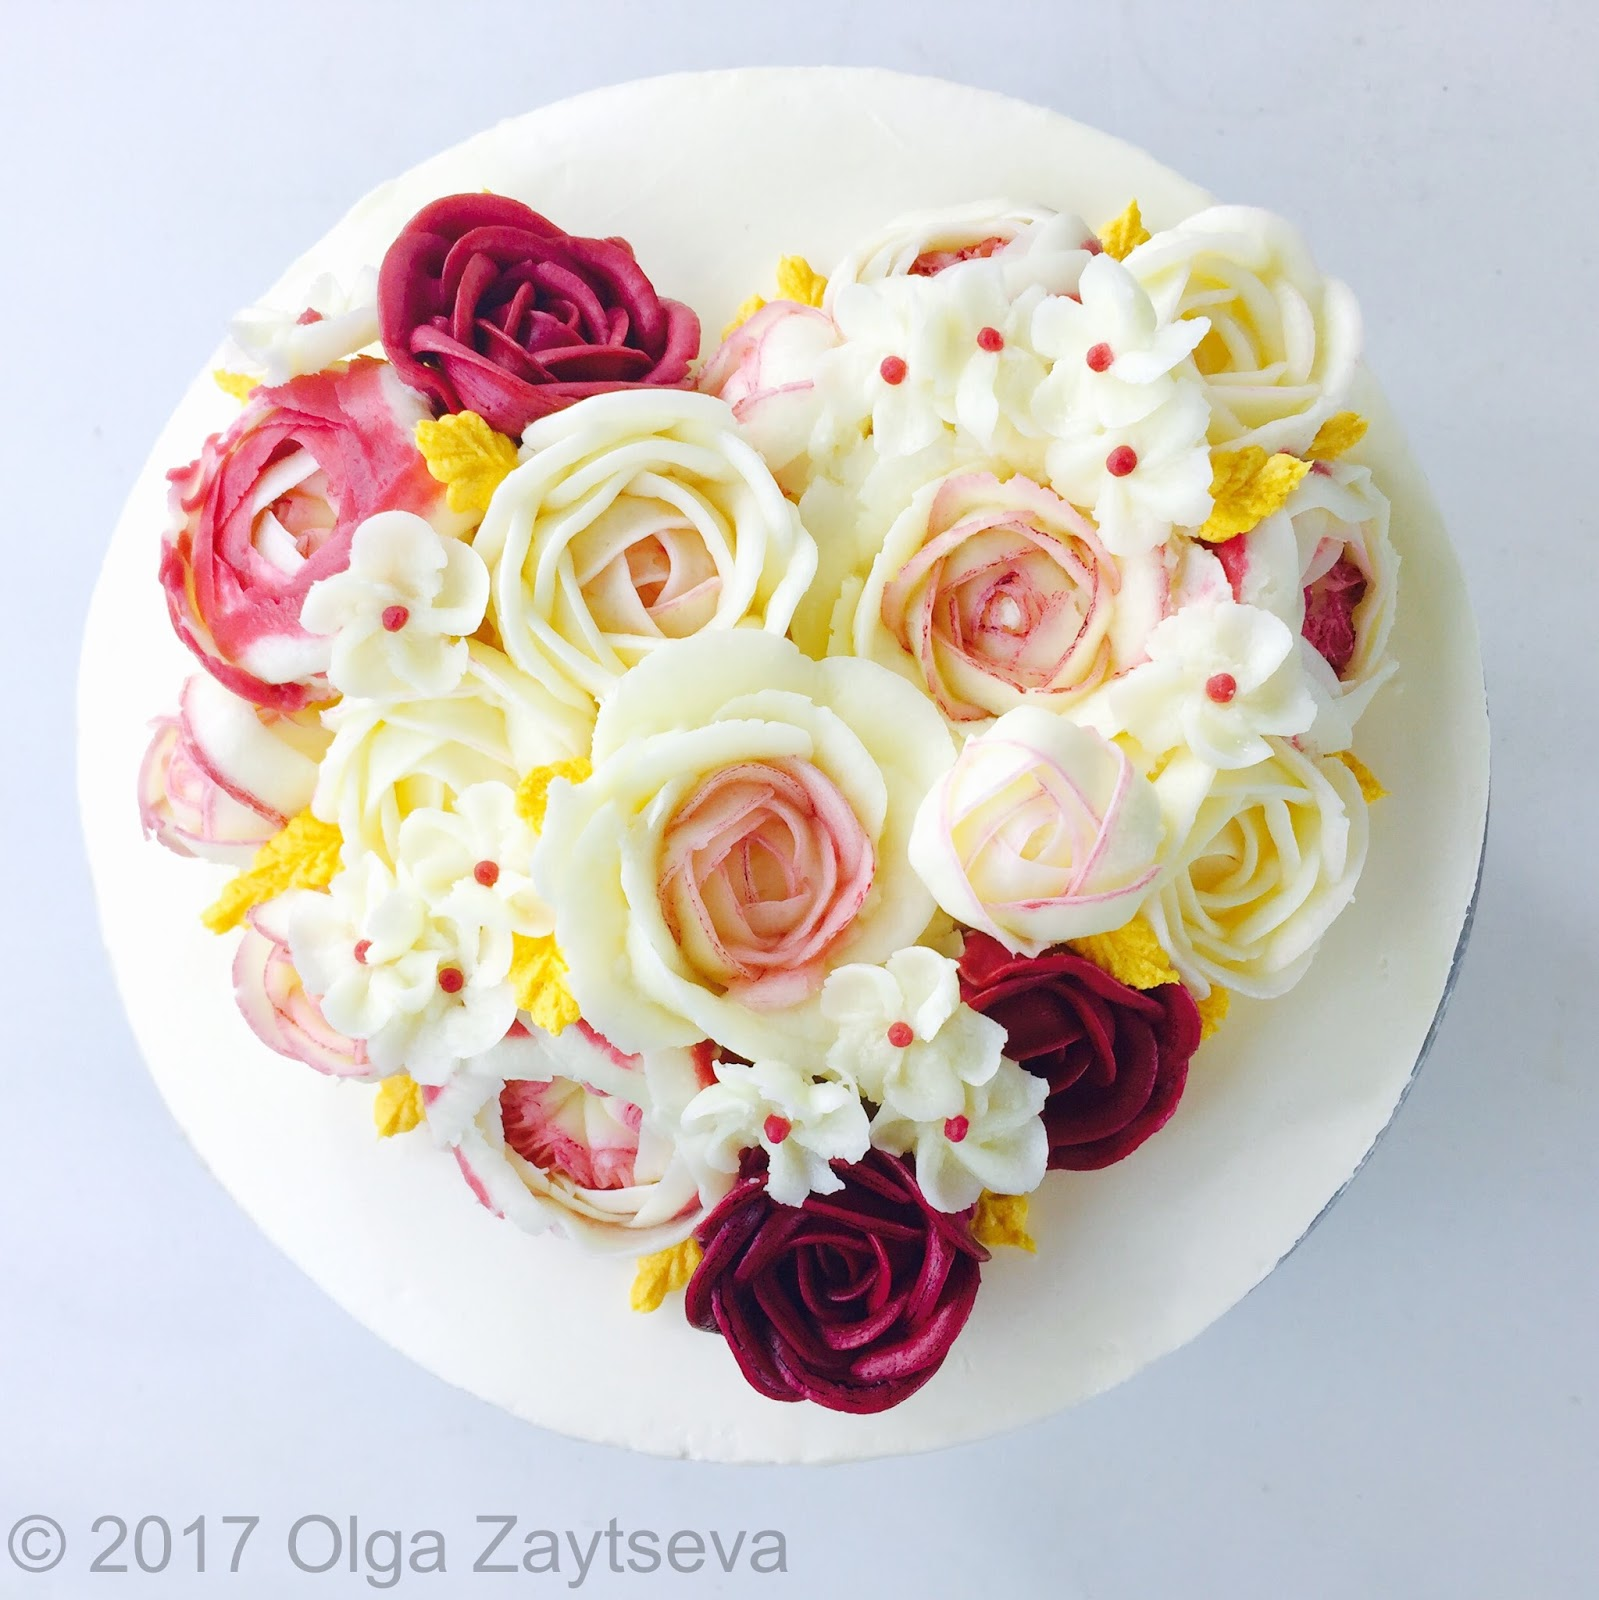 Valentines day buttercream flower cake olga zaytseva learn how to pipe variety of roses and create this heart shaped buttercream flower bouquet cake for valentines day celebration izmirmasajfo